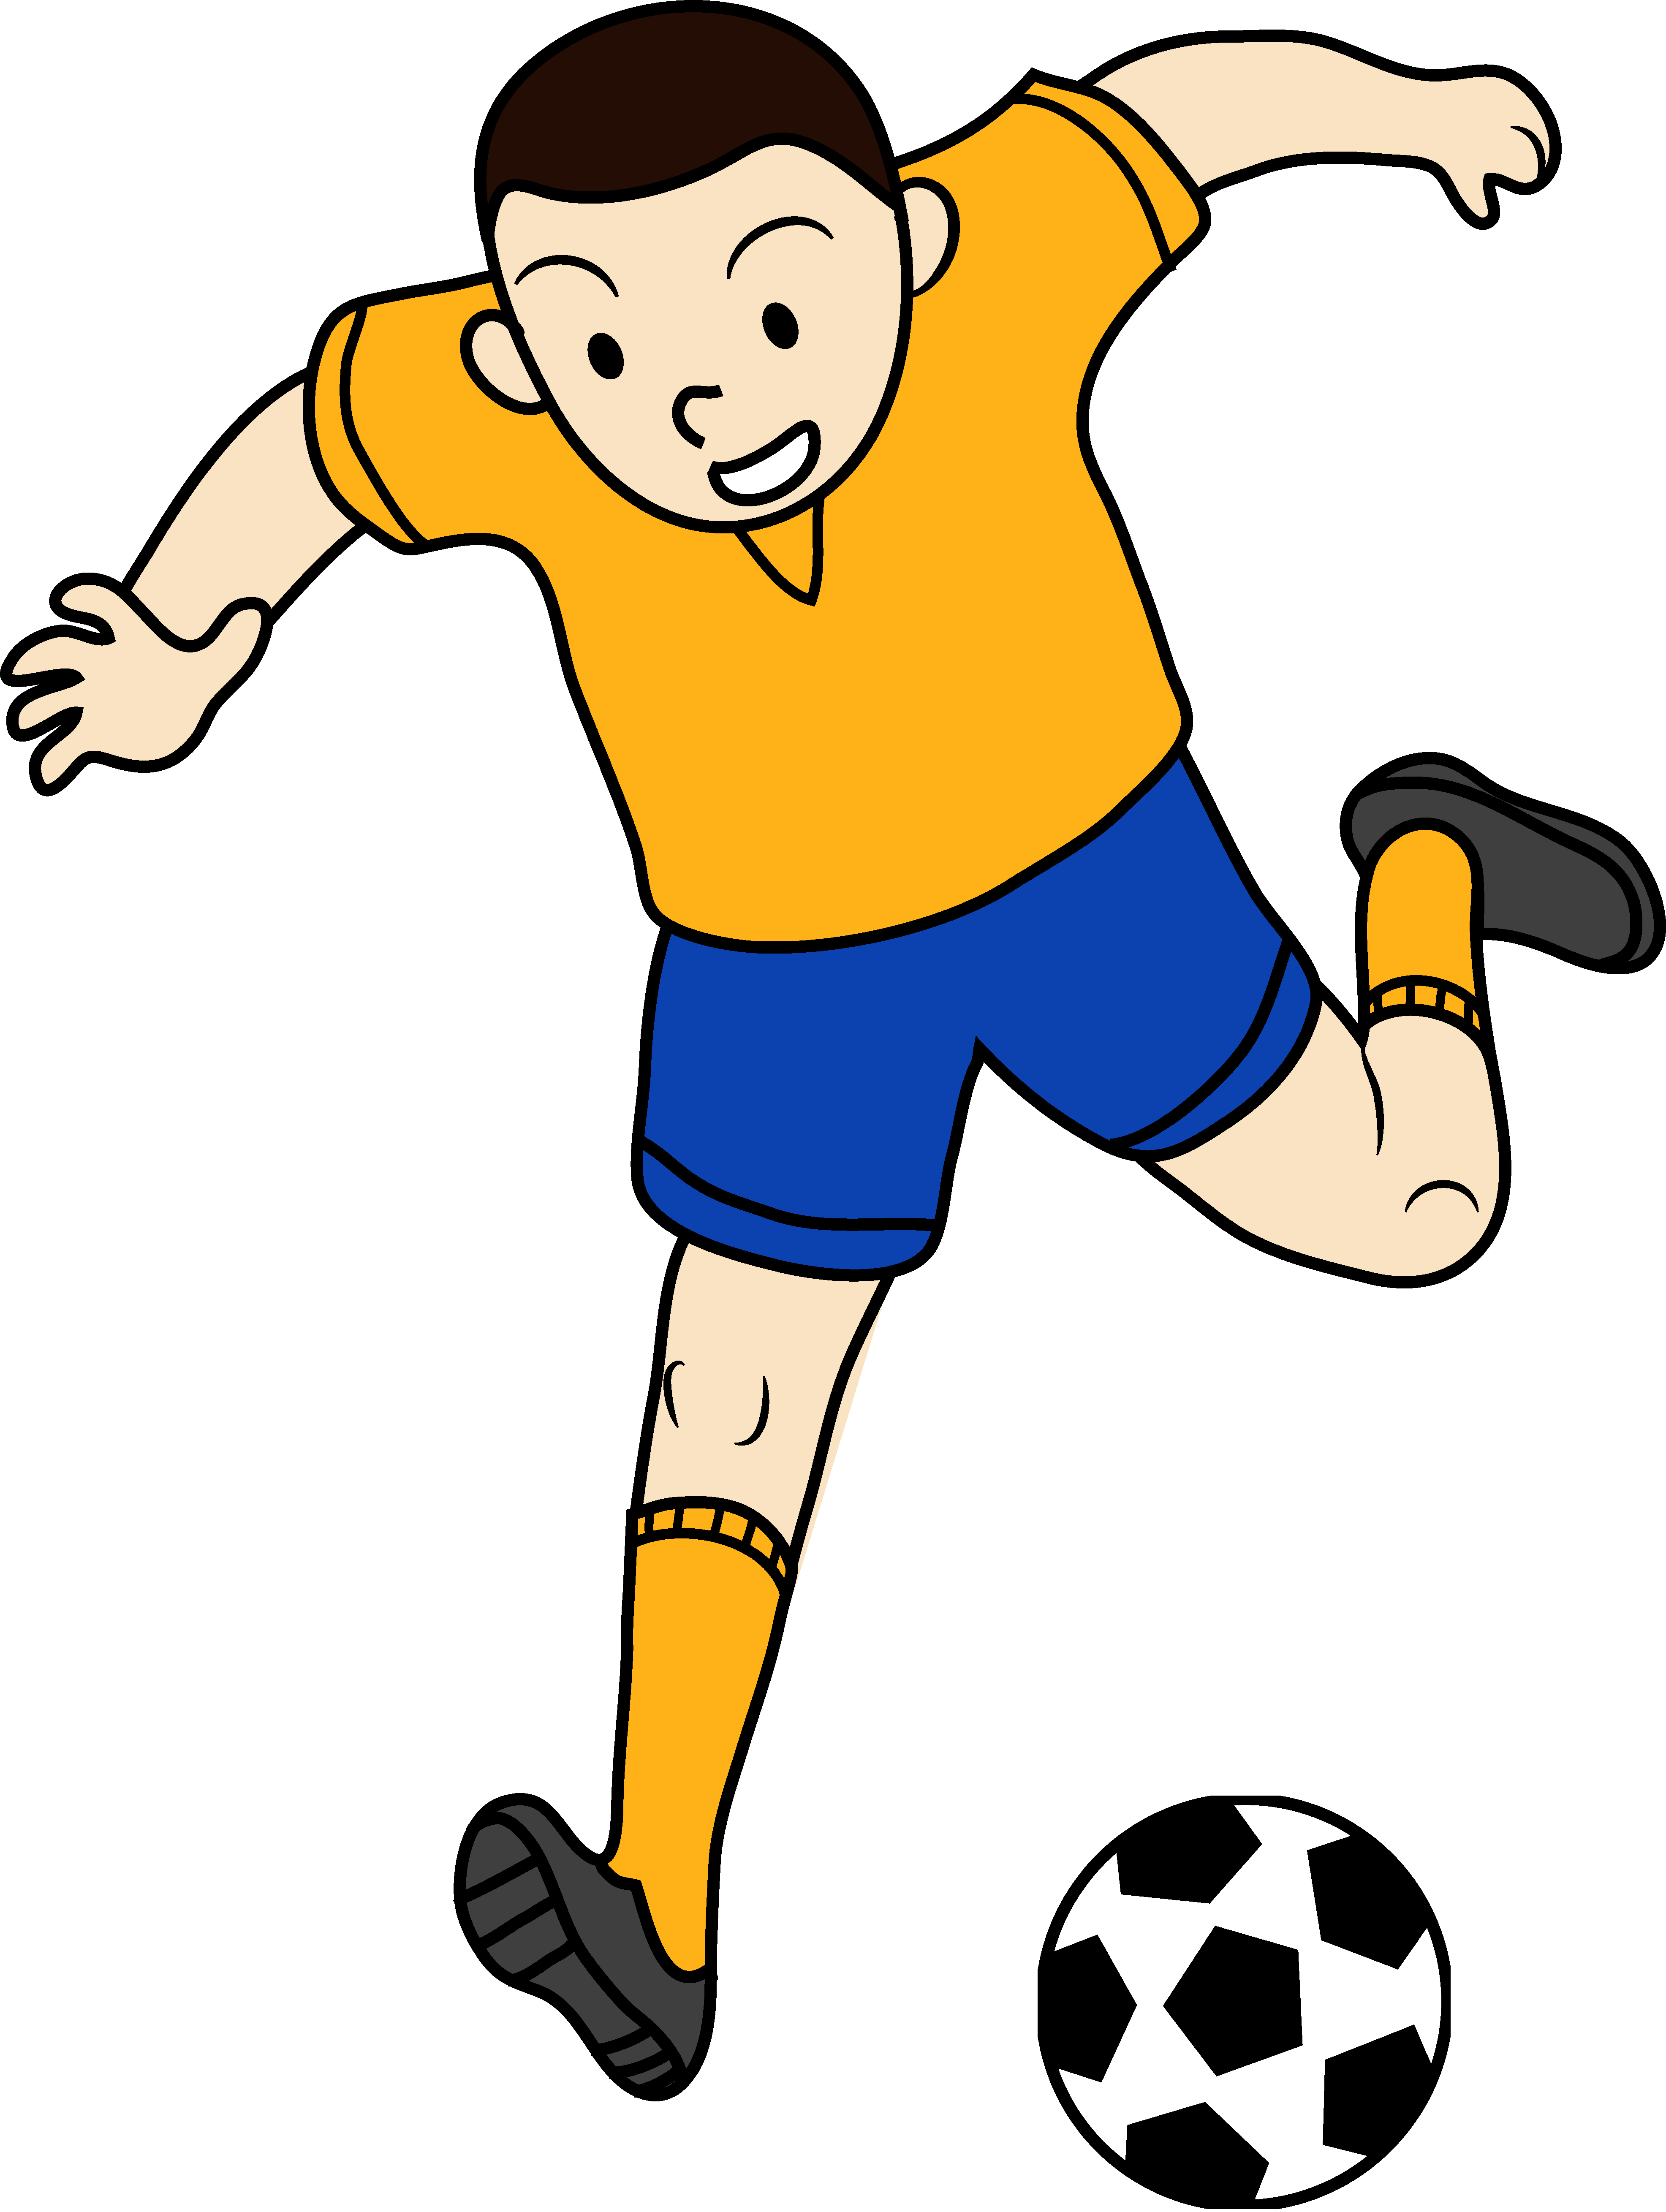 Kid Football Player Clipart-kid football player clipart-6